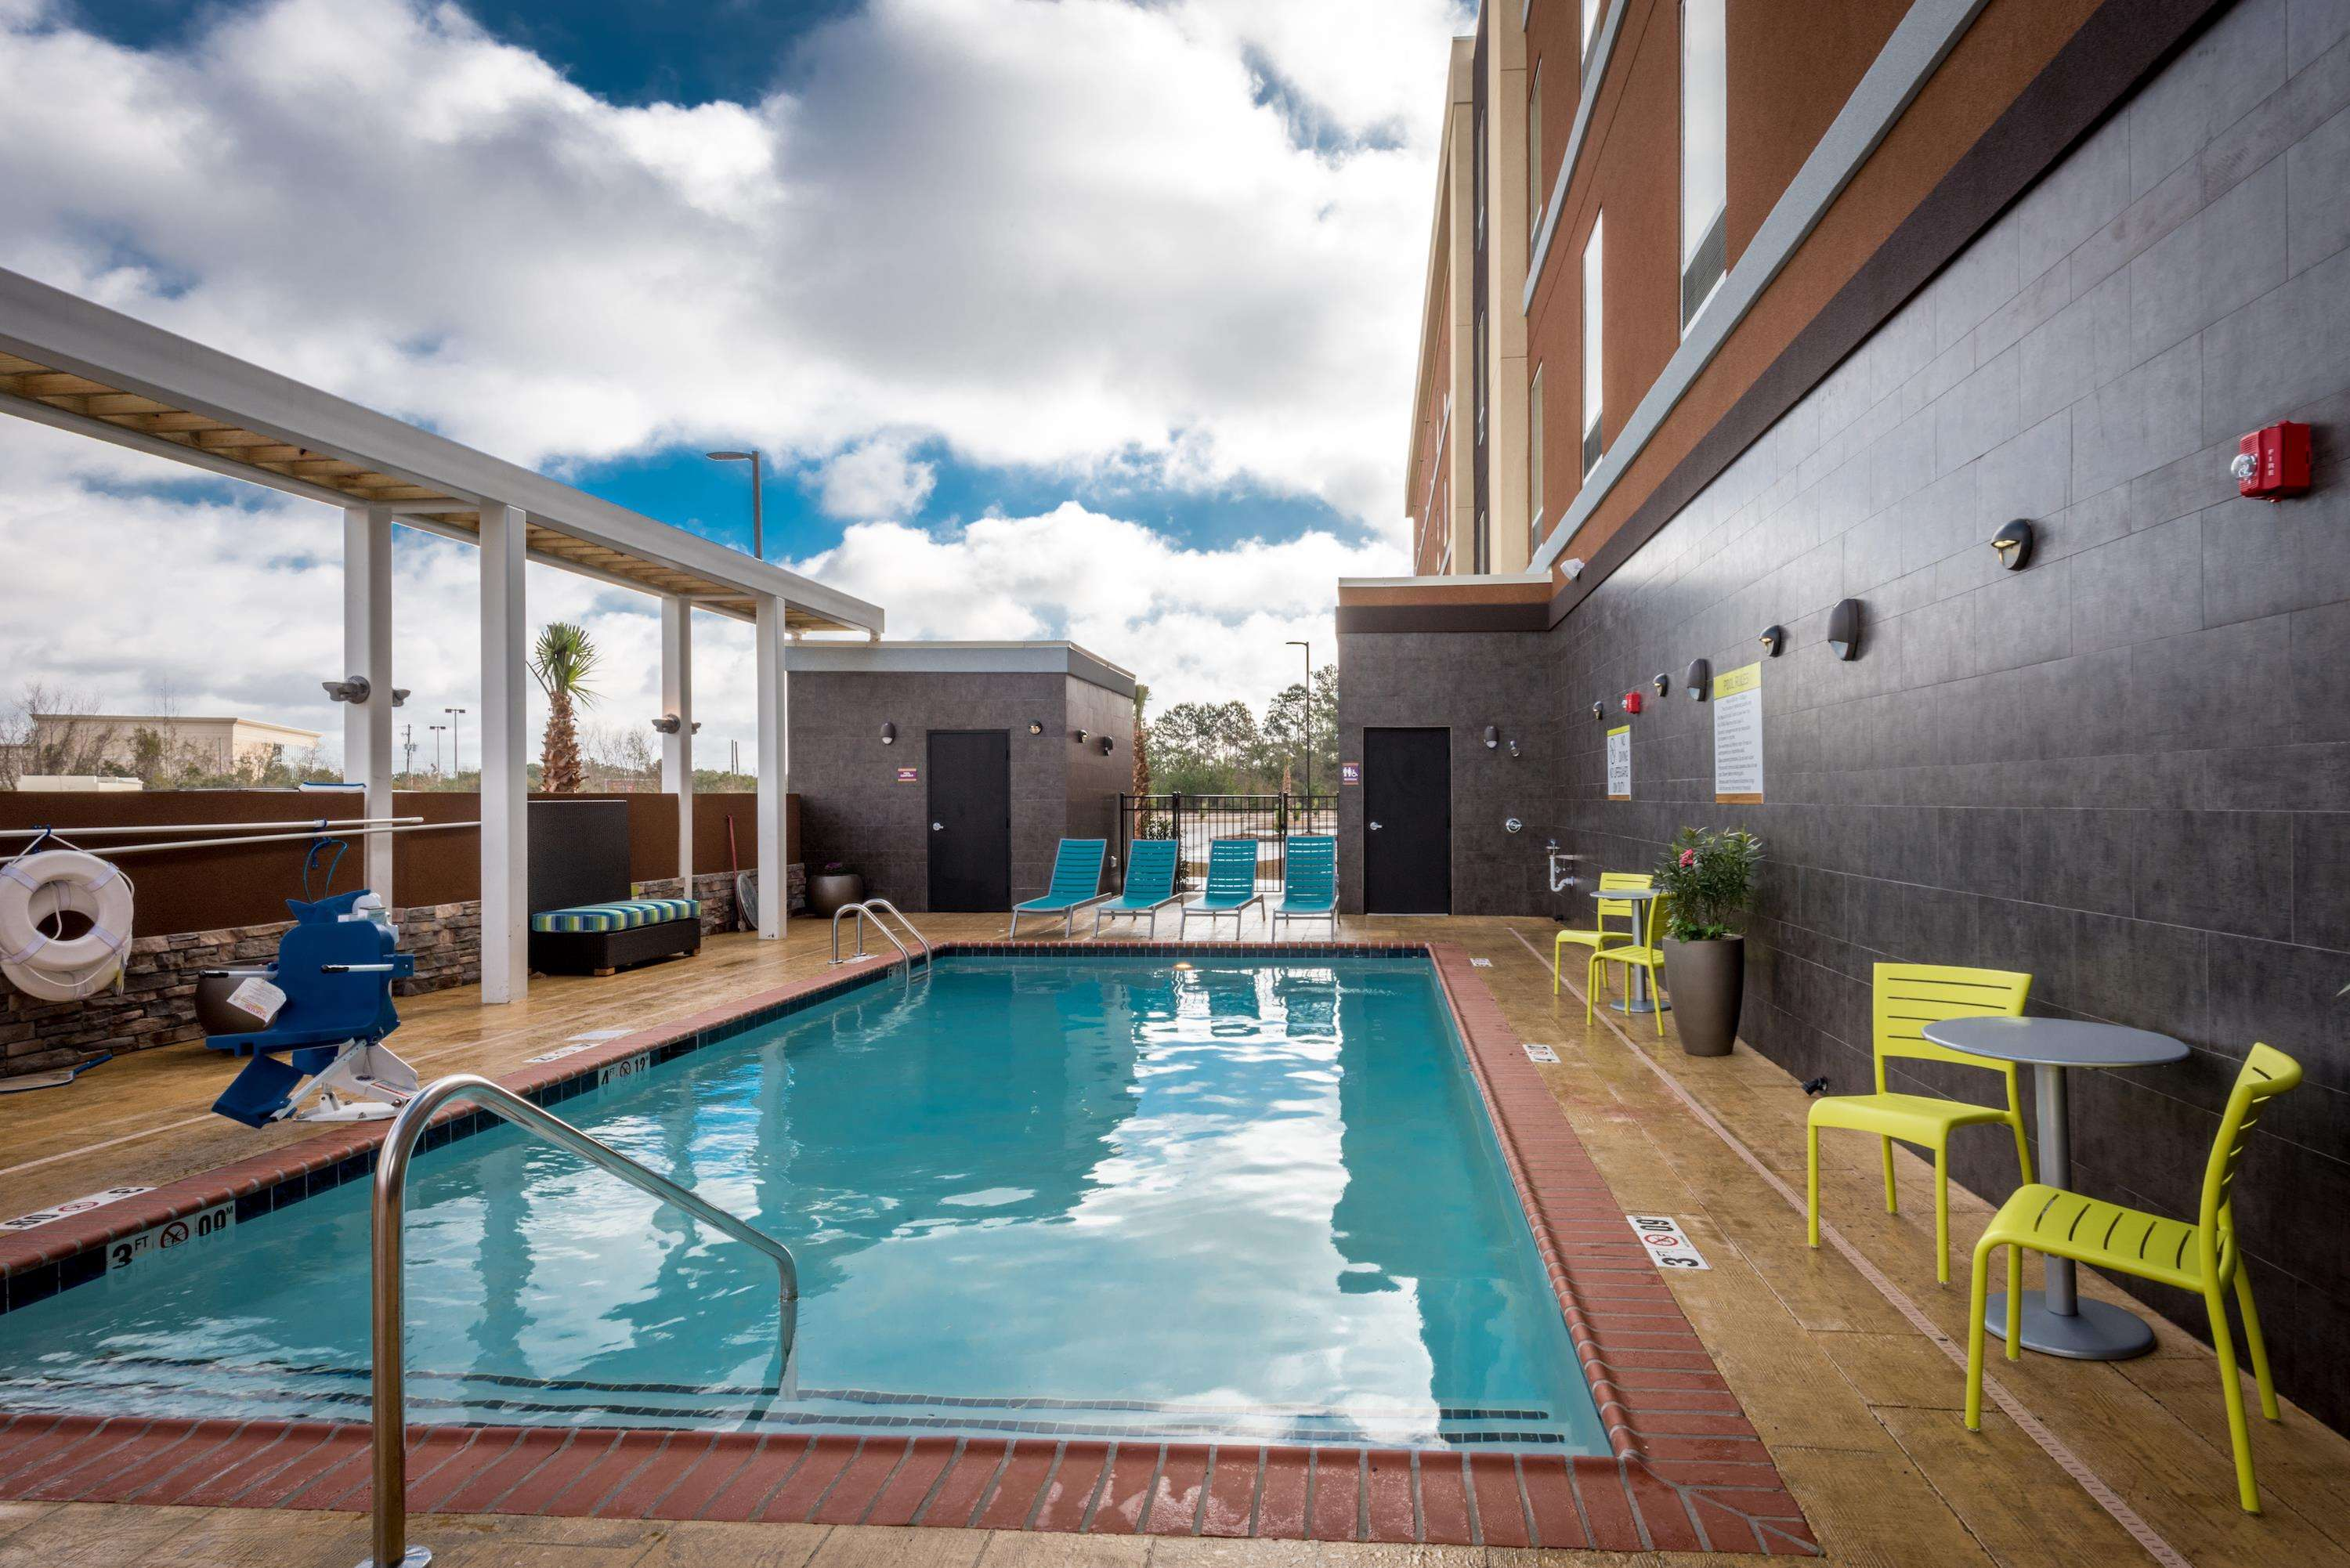 Home2 Suites by Hilton Gulfport I-10 image 8